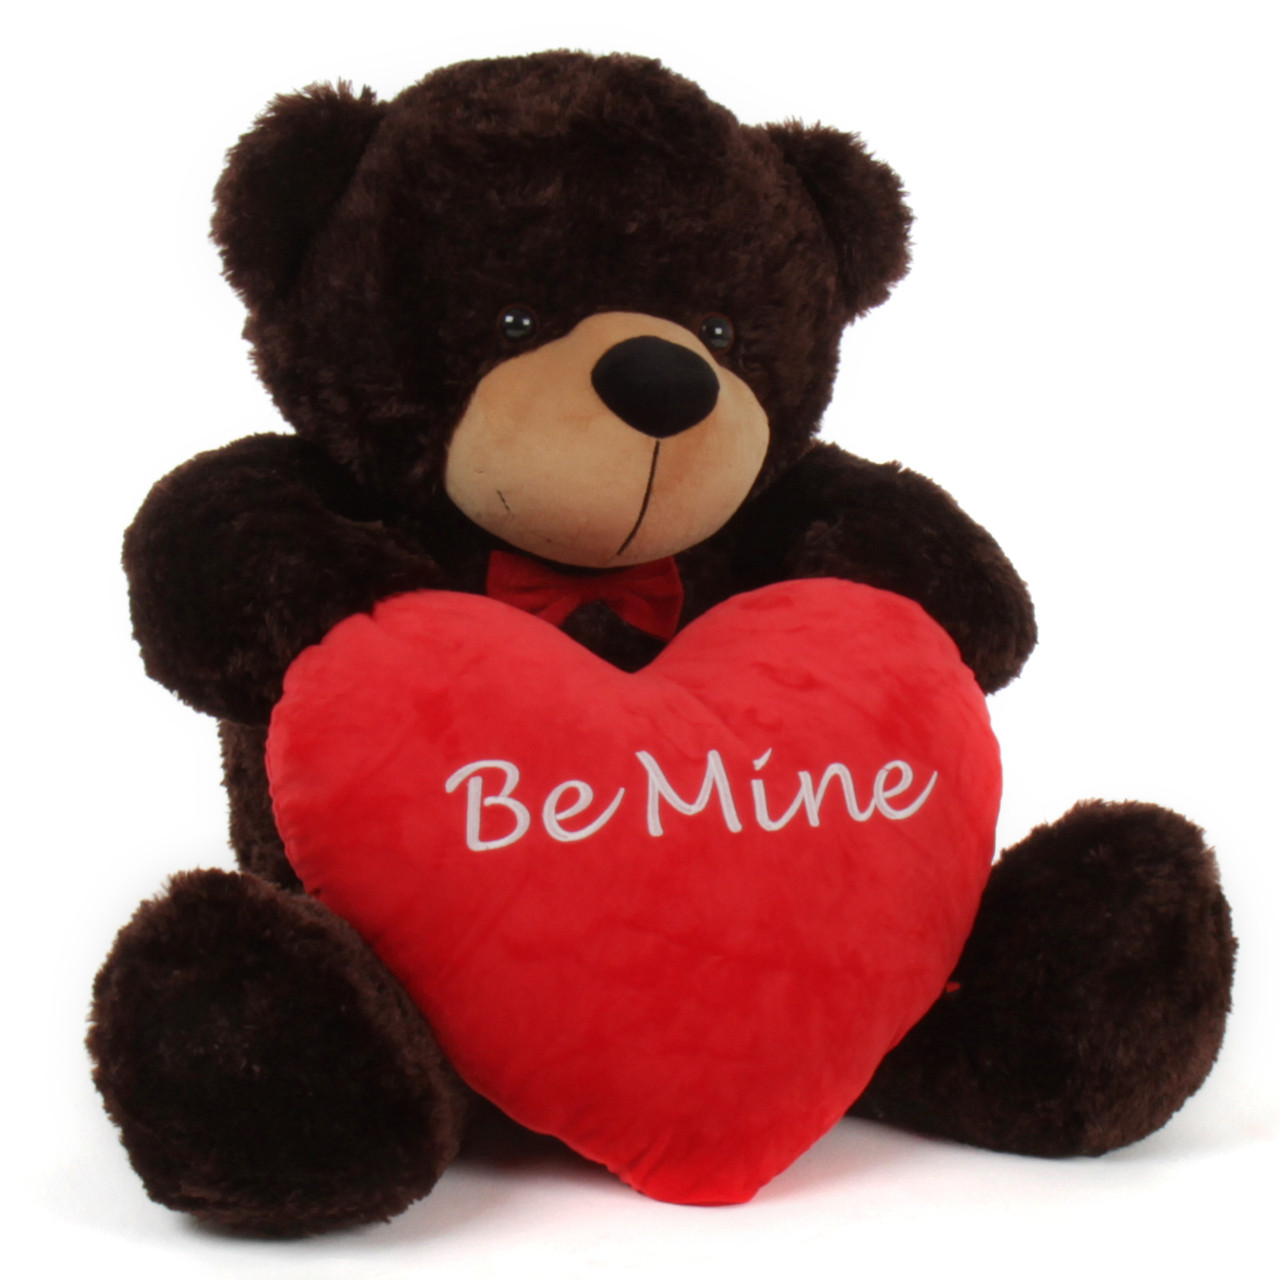 3 foot be mine valentines day teddy beart with red heart pillow - Giant Teddy Bear For Valentines Day